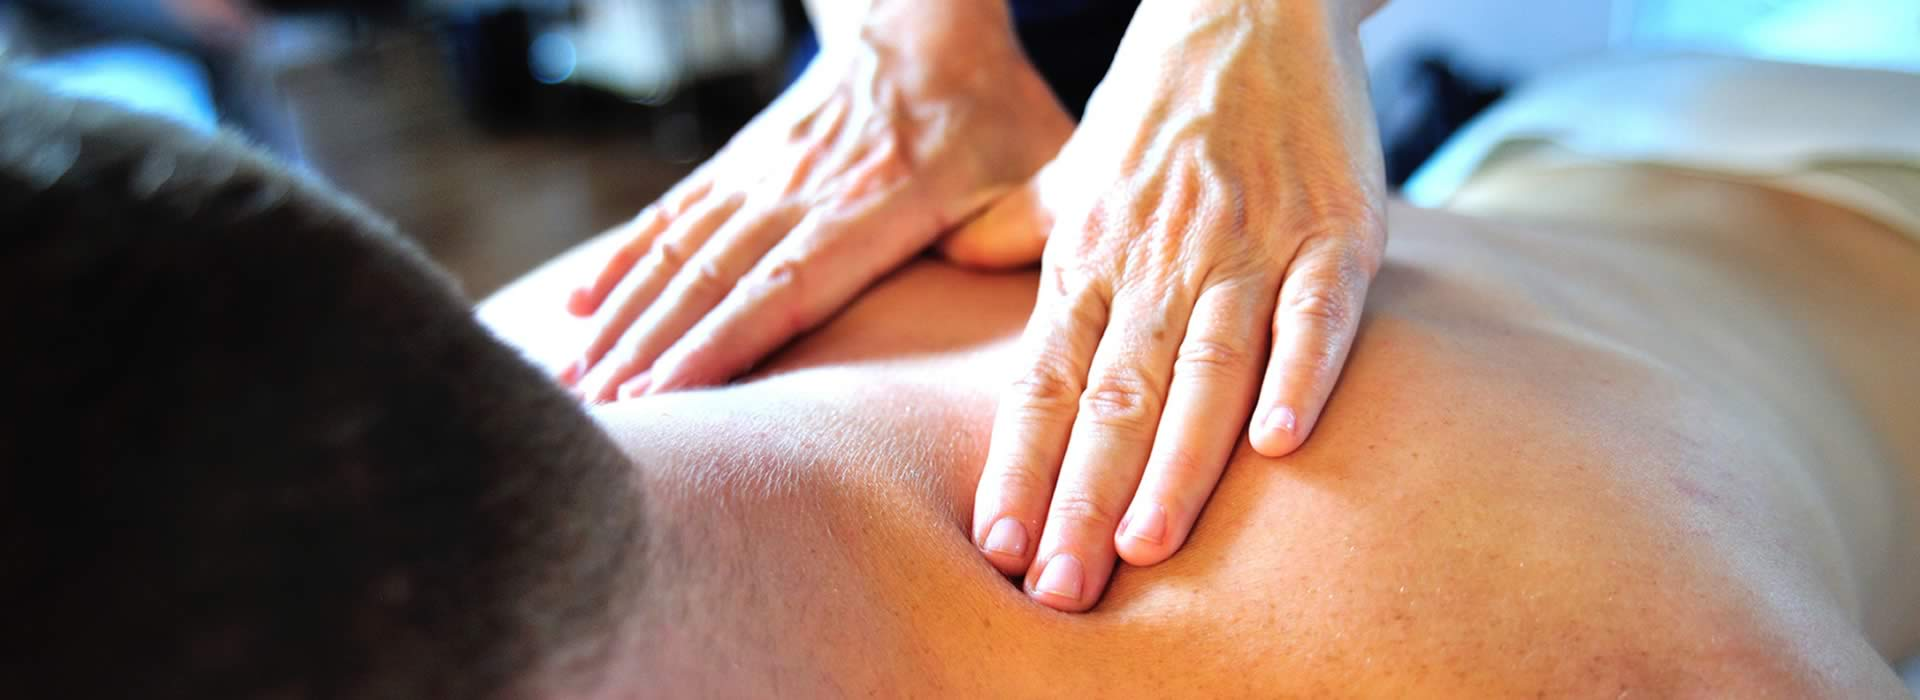 02_klangzentrum-therapie-massage-mann.jpg